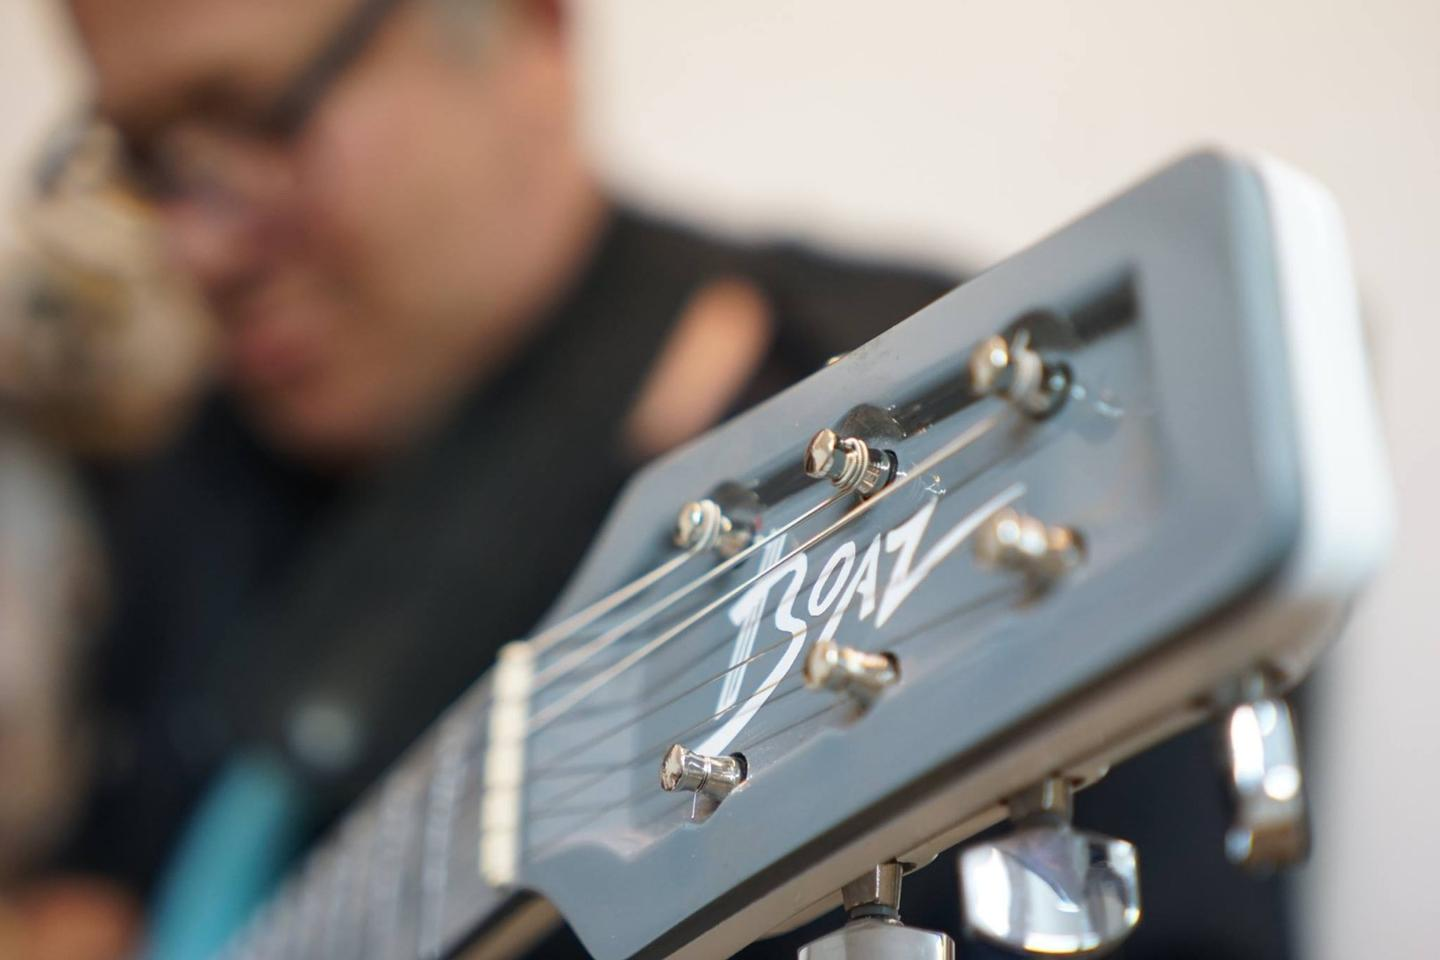 Luthier Boaz Elkayam first teased the One modular guitar in April, 2018